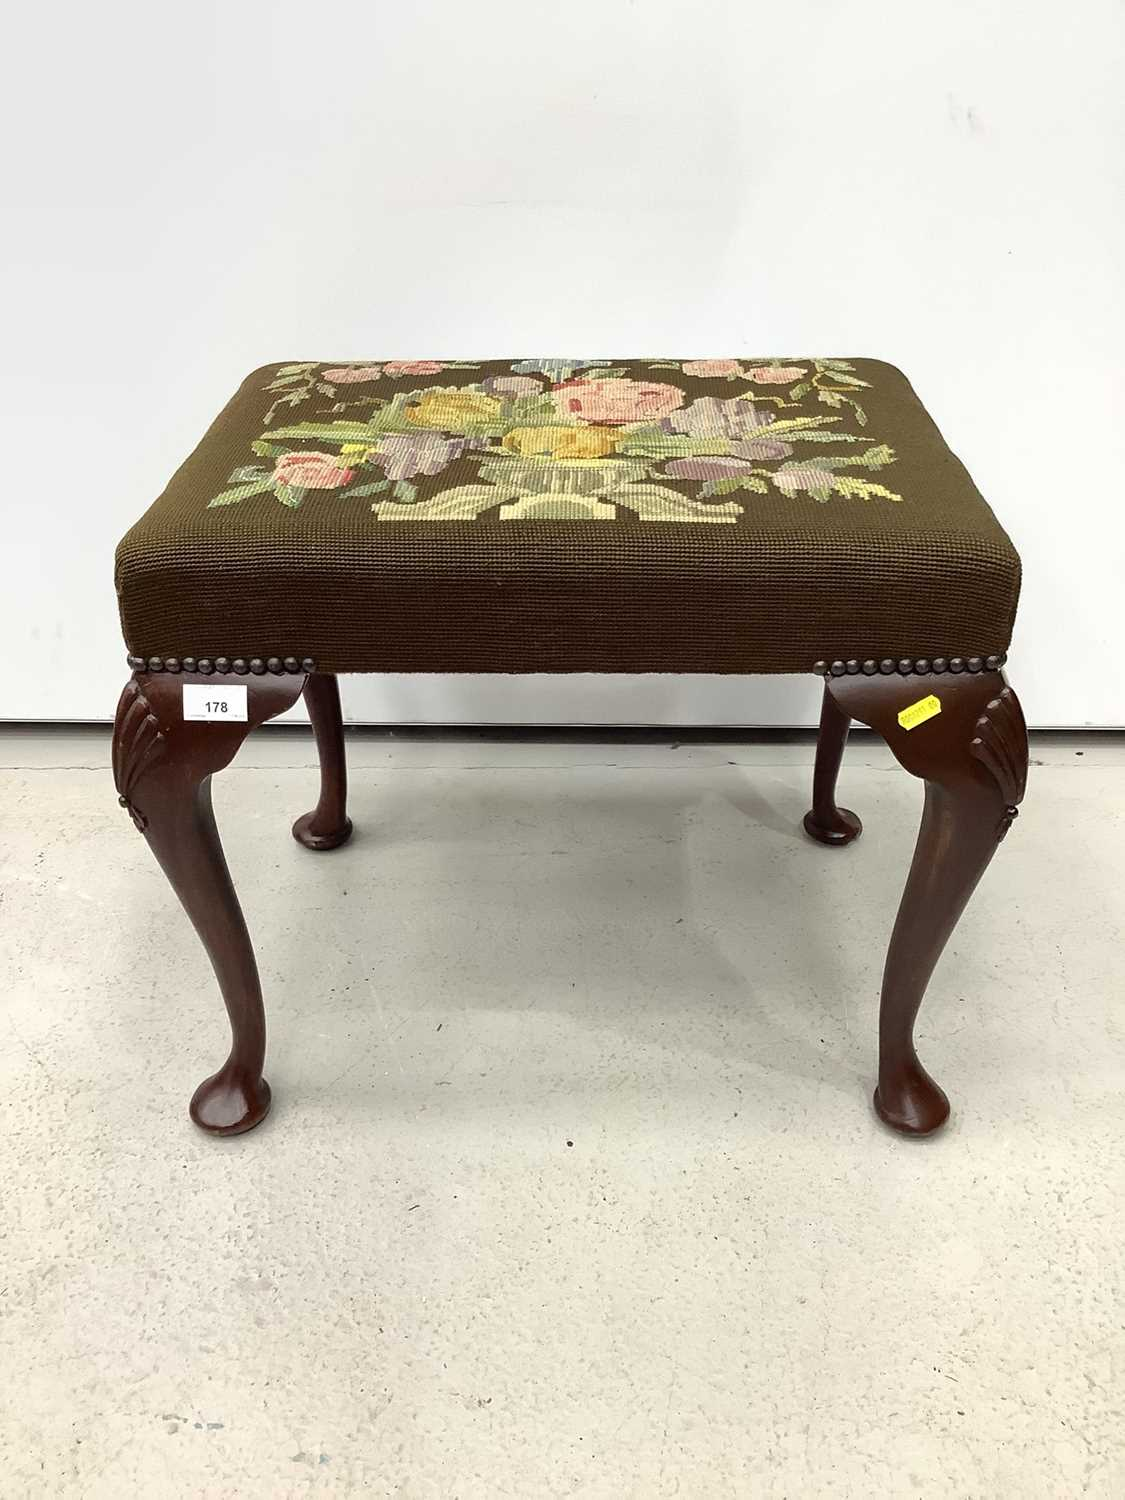 Good quality mahogany stool with floral tapestry seat on cabriole legs with shell knees, 52cm wide x - Image 2 of 6